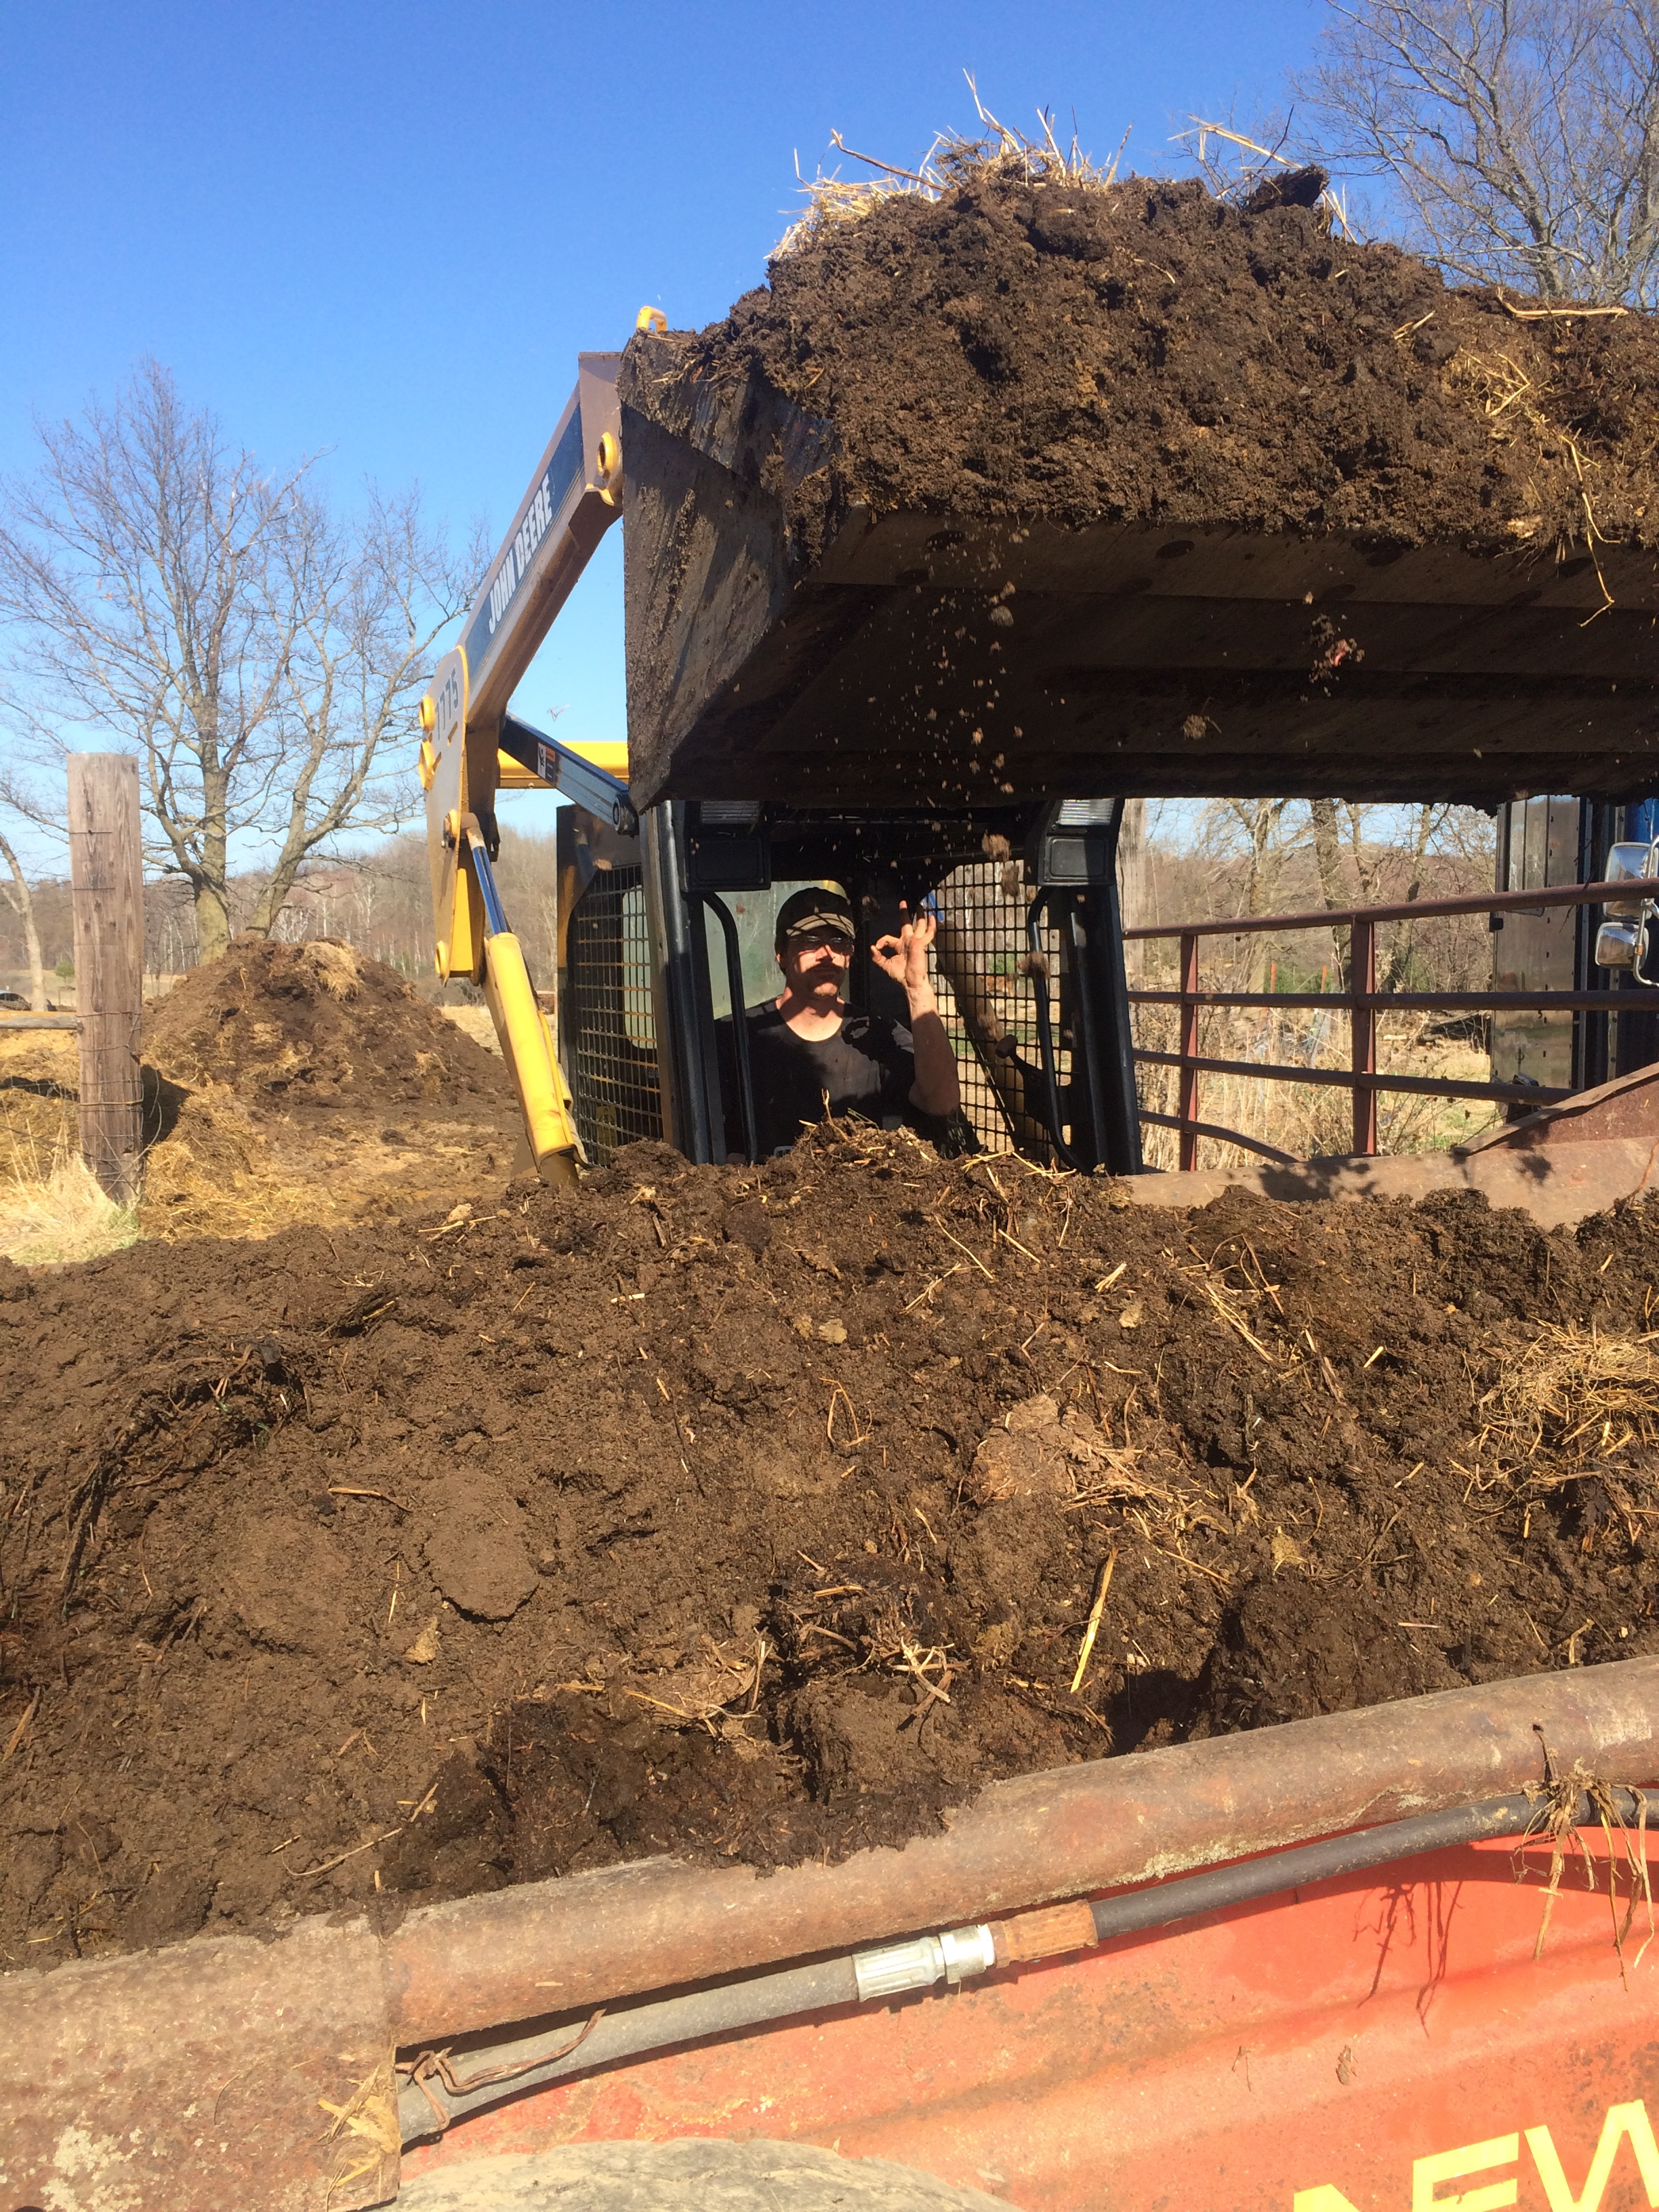 Farmer Josh moving our farm based fertility to the compost pile.